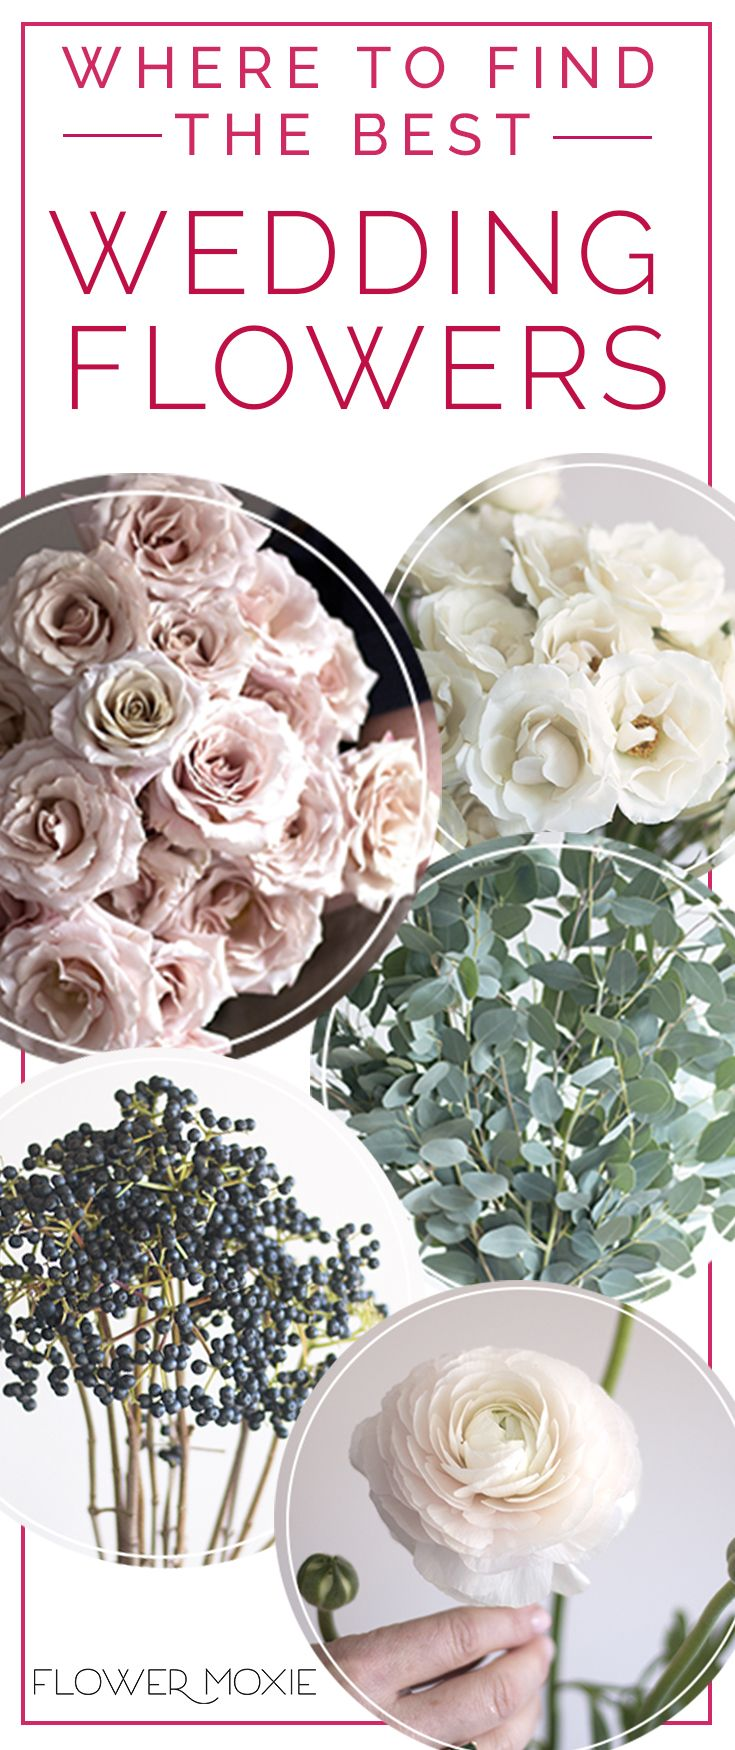 Diy Wholesale Wedding Flowers Wholesale Flowers Wedding Bulk Wedding Flowers Online Wedding Flowers